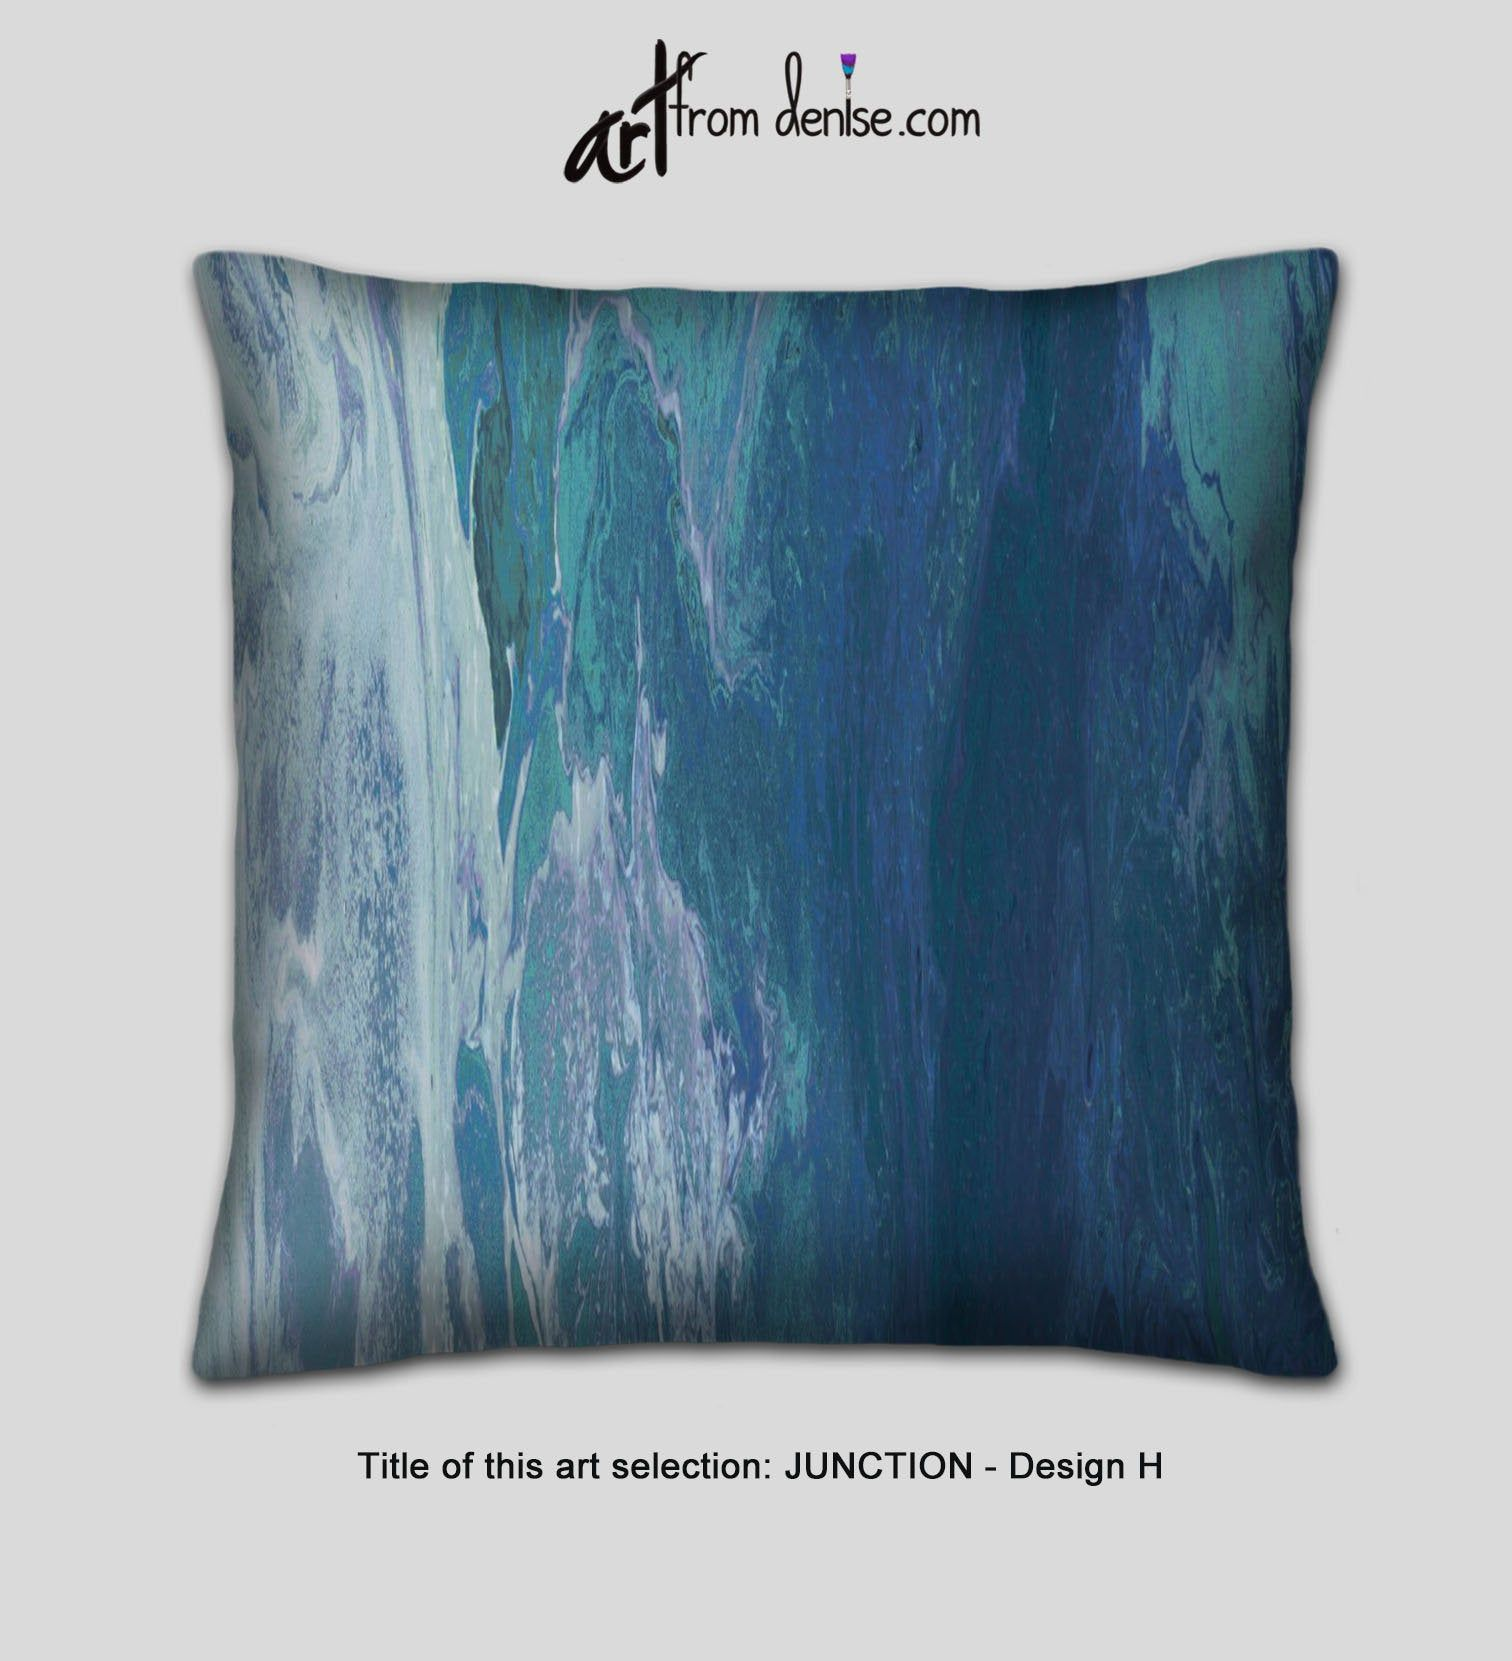 Large Decorative Pillows Gray Navy Blue And Teal Throw Etsy In 2020 Oversized Throw Pillows Teal Throw Pillows Teal Pillows